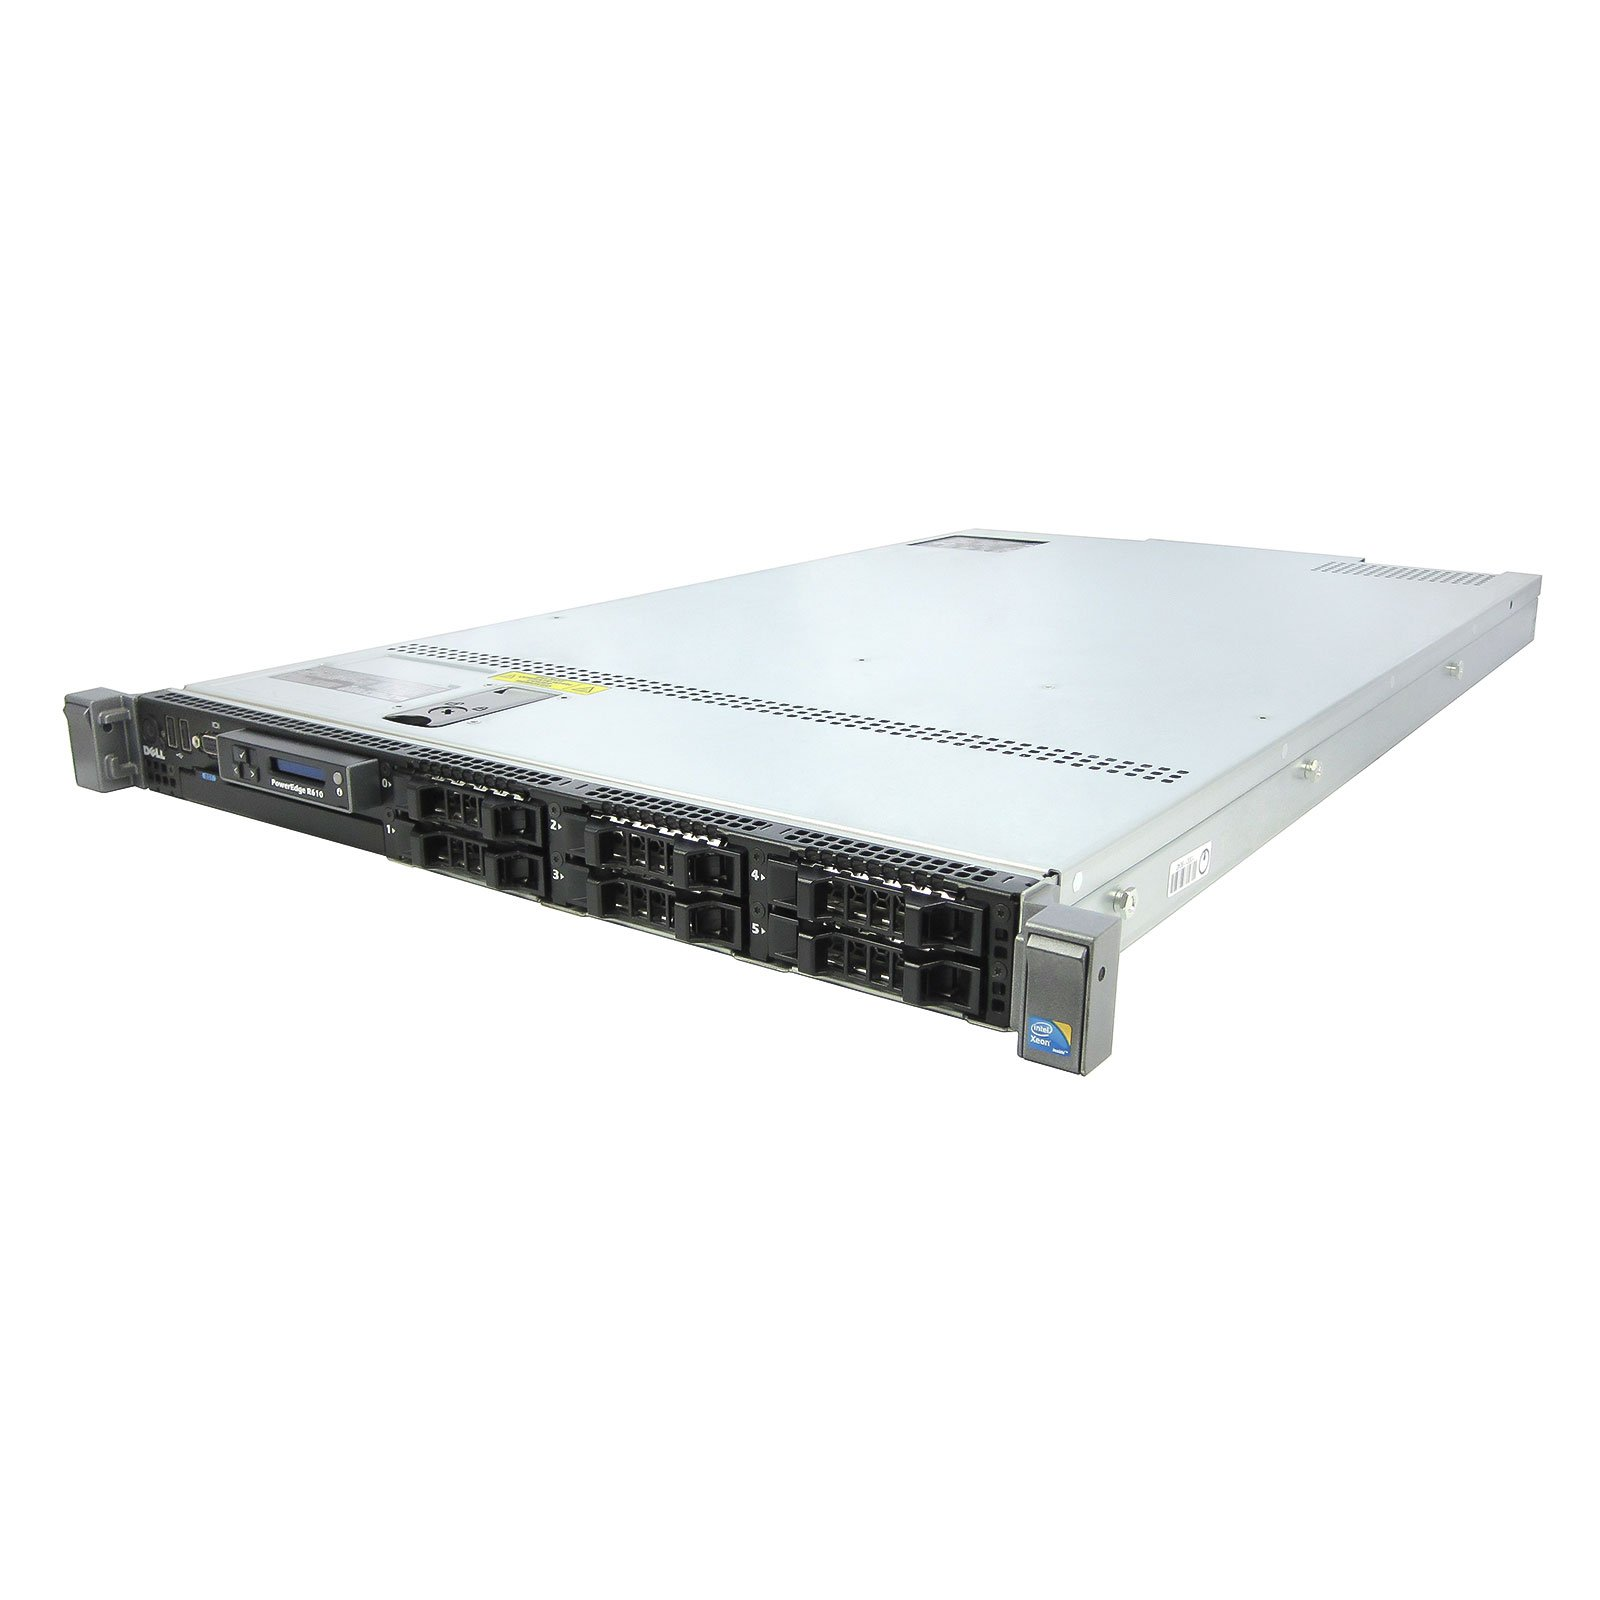 DELL PowerEdge R610 2 x 2.67Ghz E5640 Quad Core 48GB 4 x 146GB 10K SAS (Certified Refurbished)